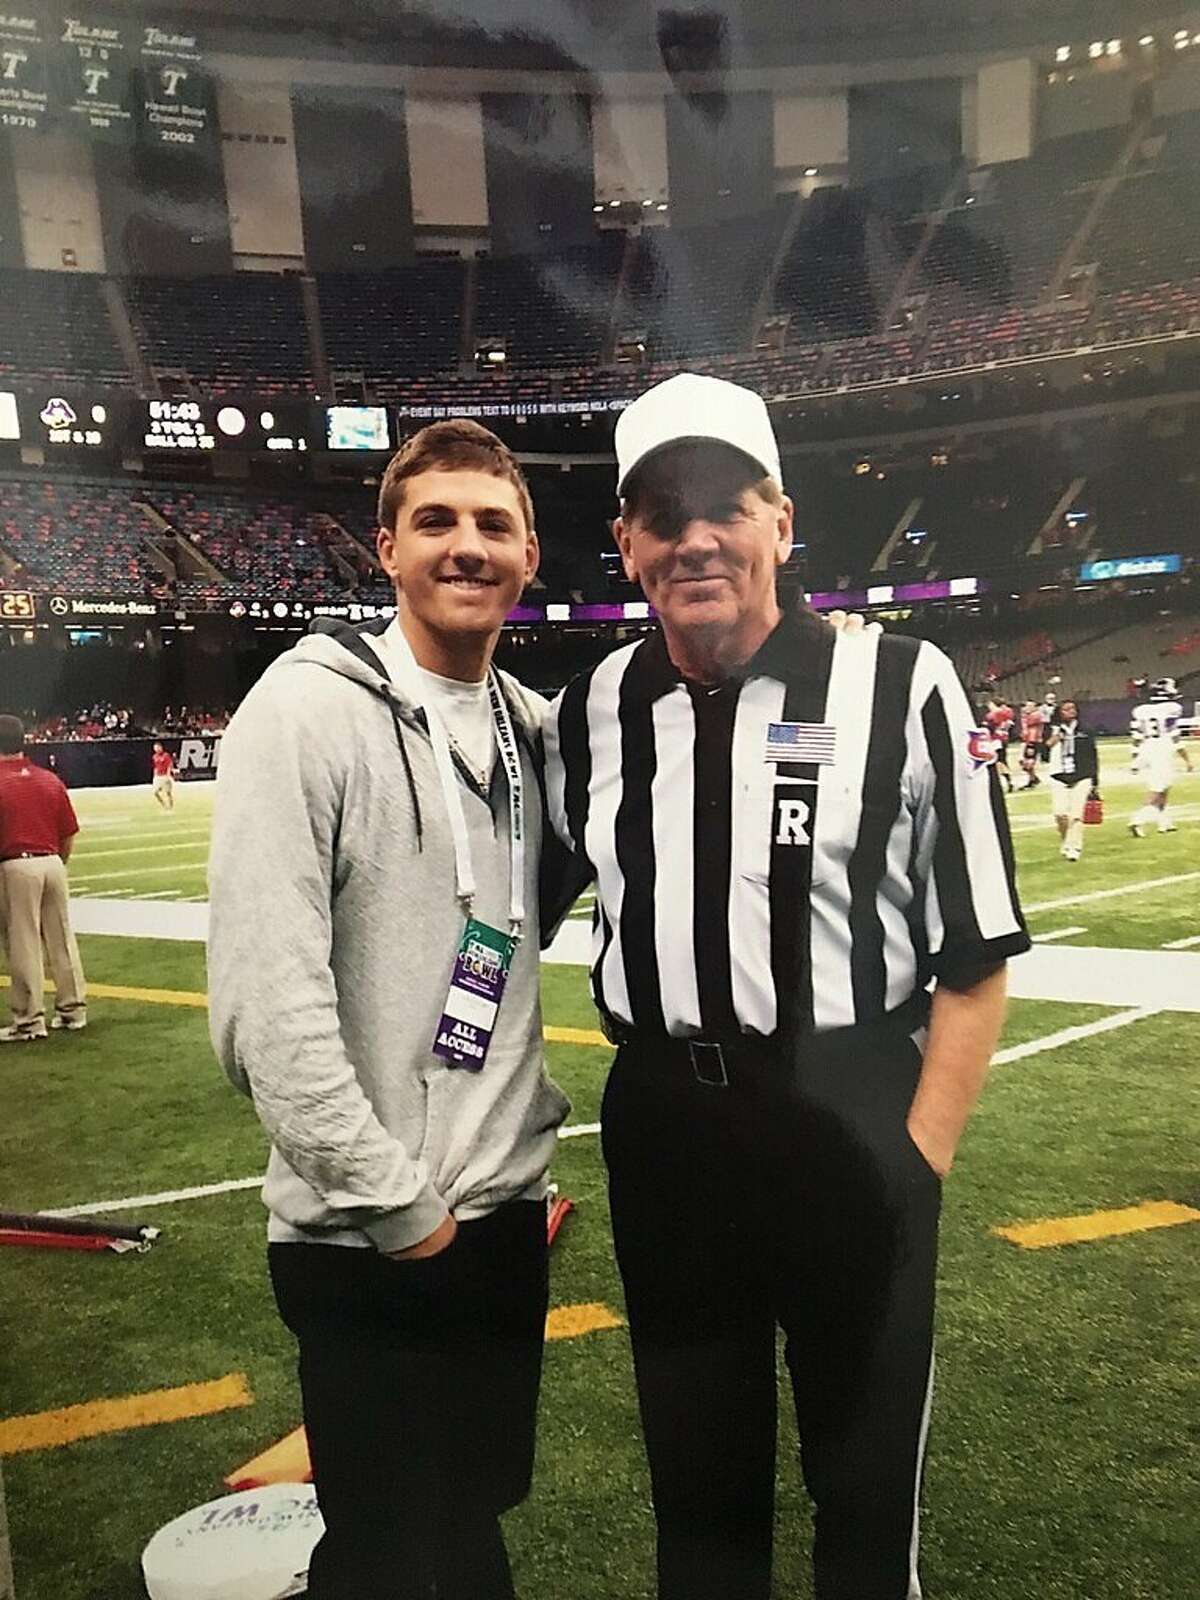 Giants starter Kevin Gausman got to see his dad, Clair, a college football replay official, this week in Seattle, the elder Gausman's first time seeing his son pitch for San Francisco in person.